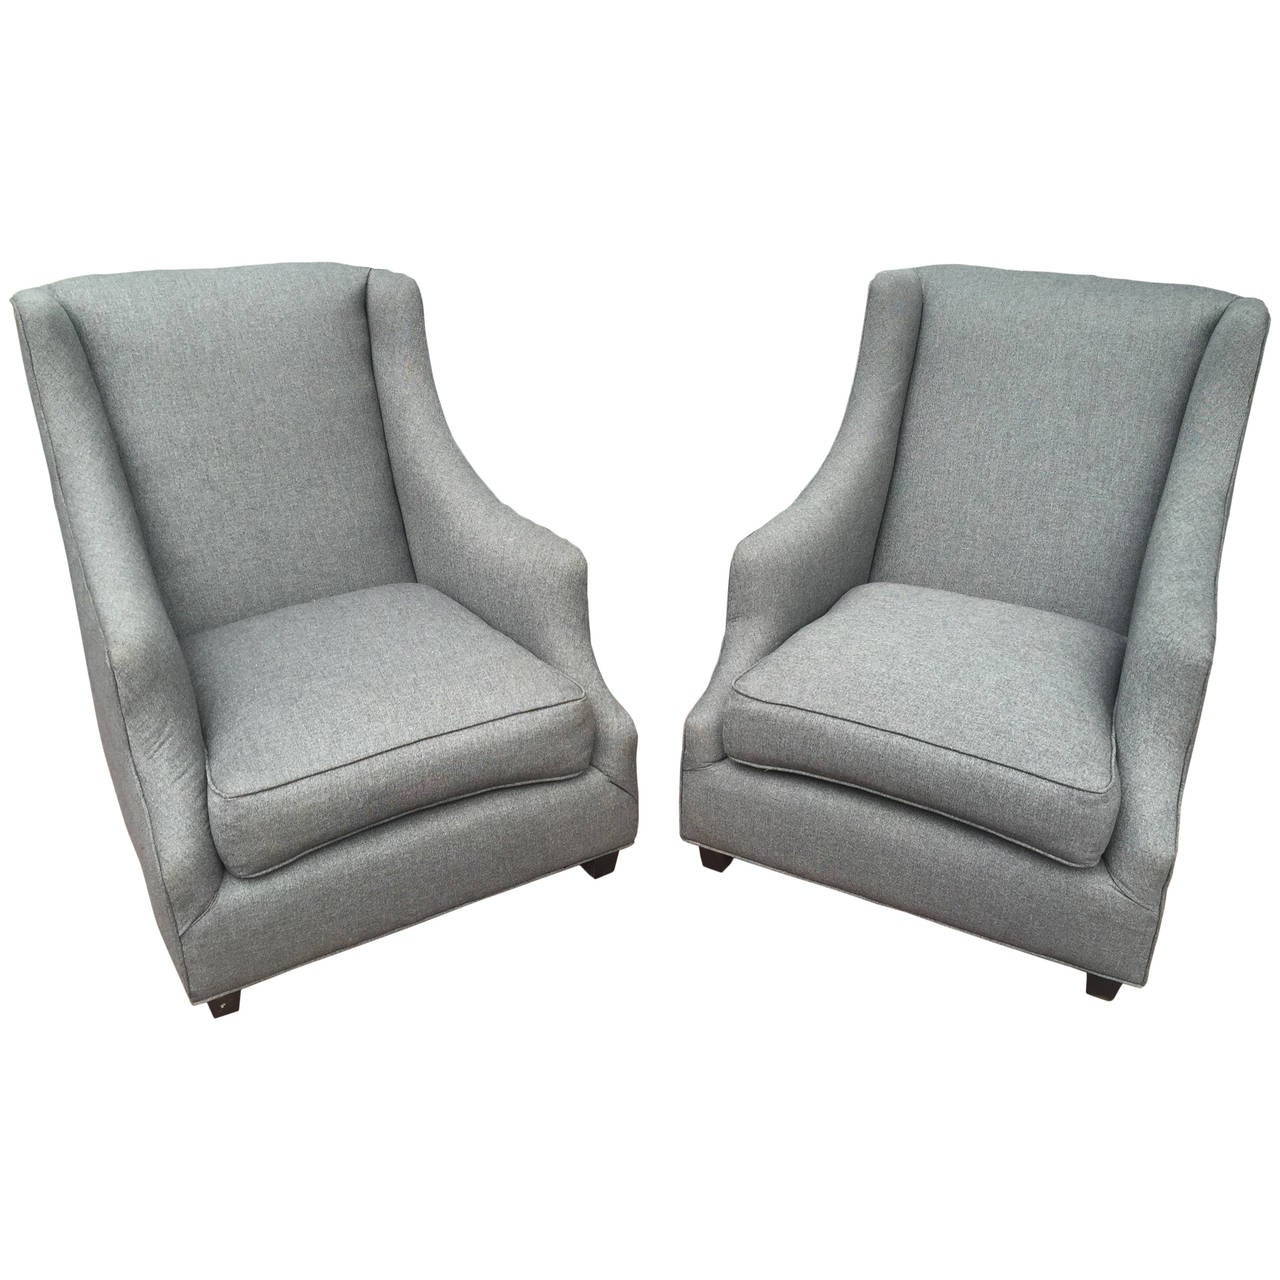 Pair of upholstered italian club chairs at 1stdibs for Small club chairs upholstered